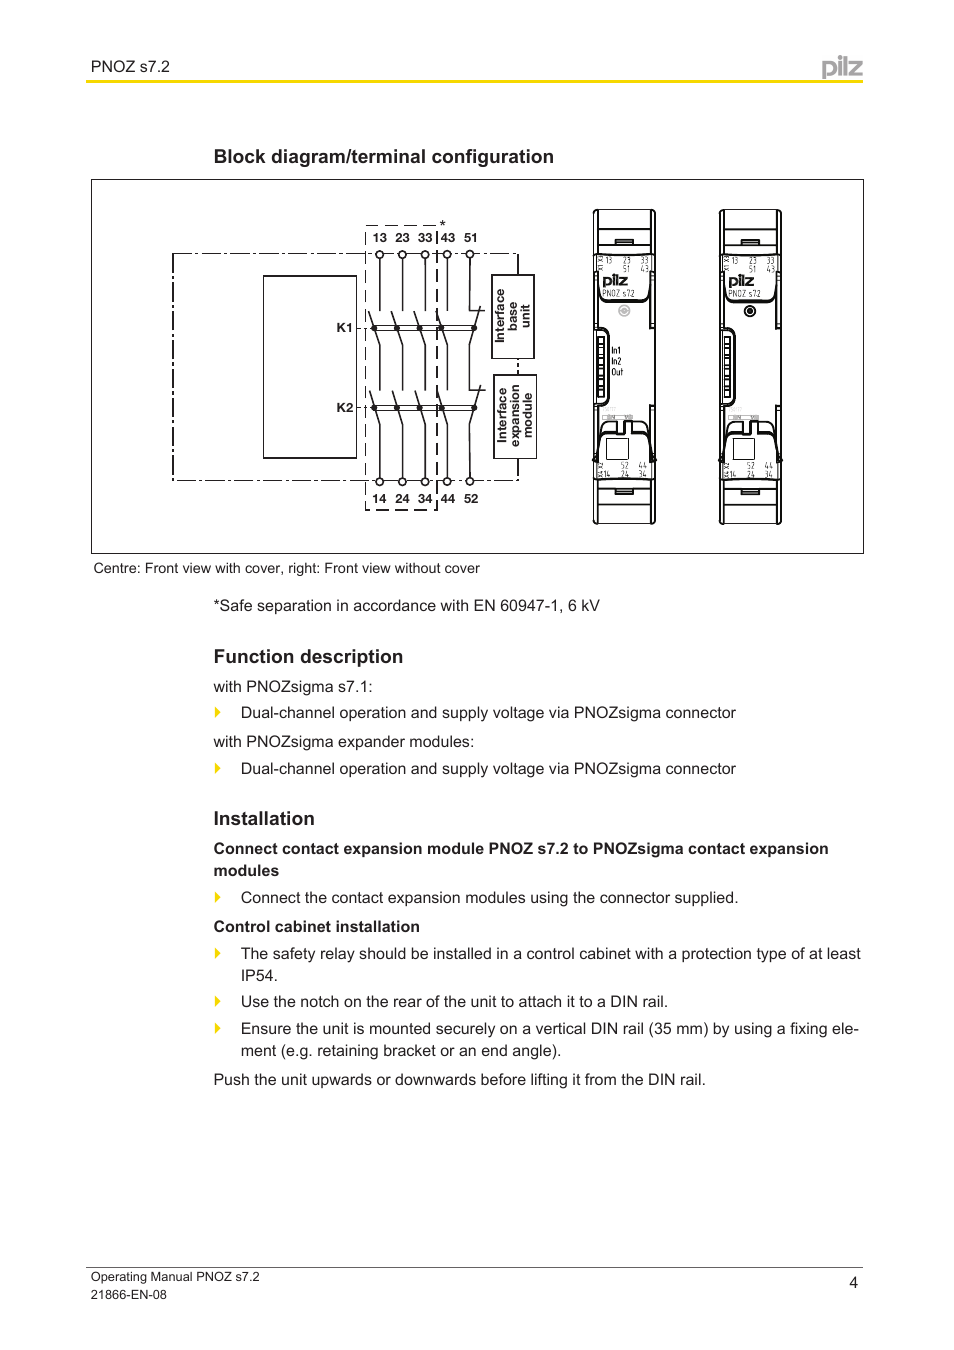 Block Diagram  Terminal Configuration  Function Description